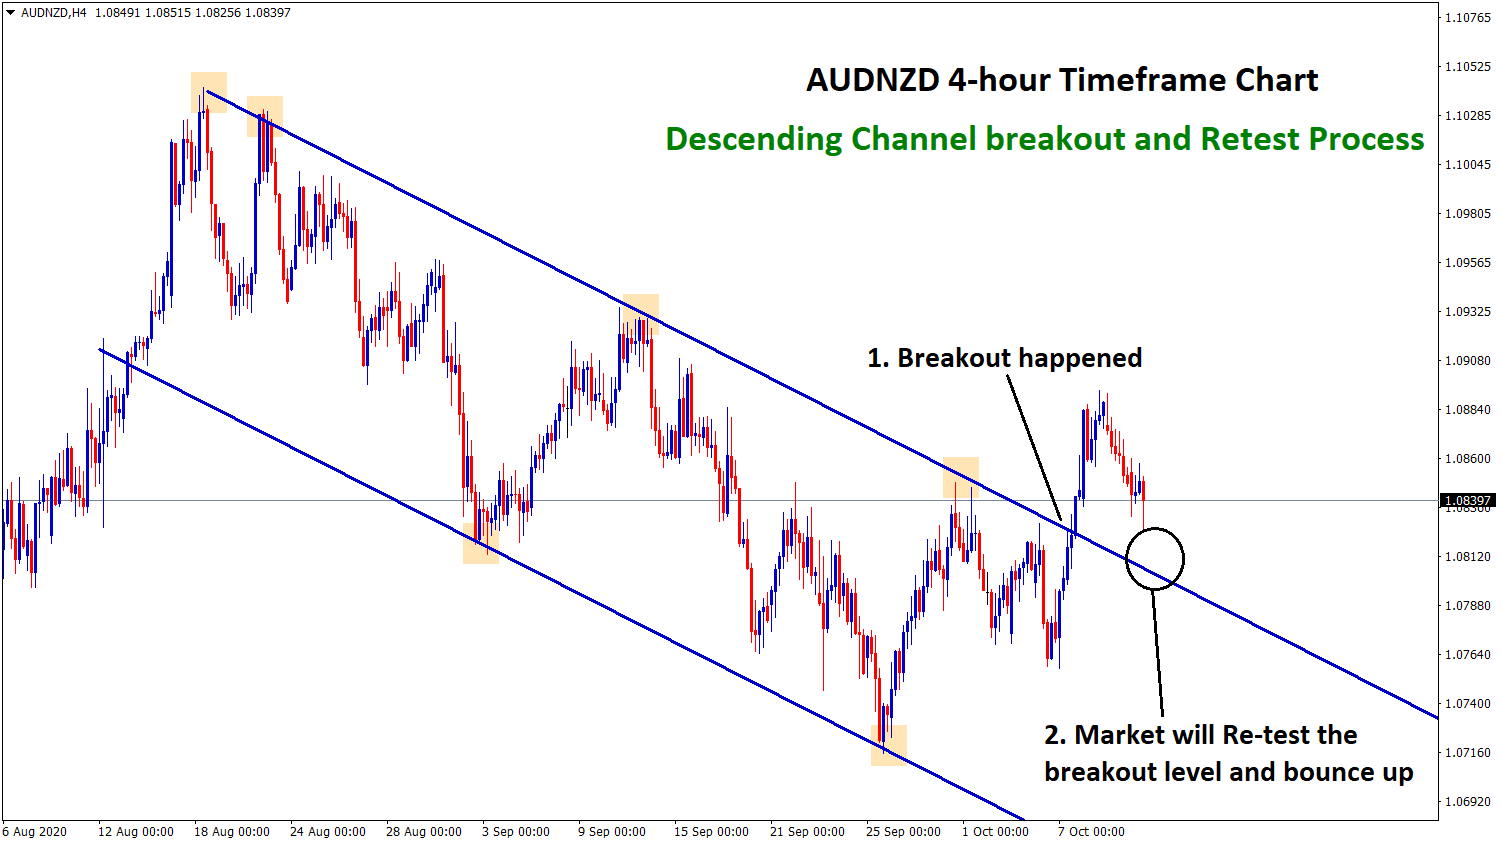 audnzd going to retest the breakout level